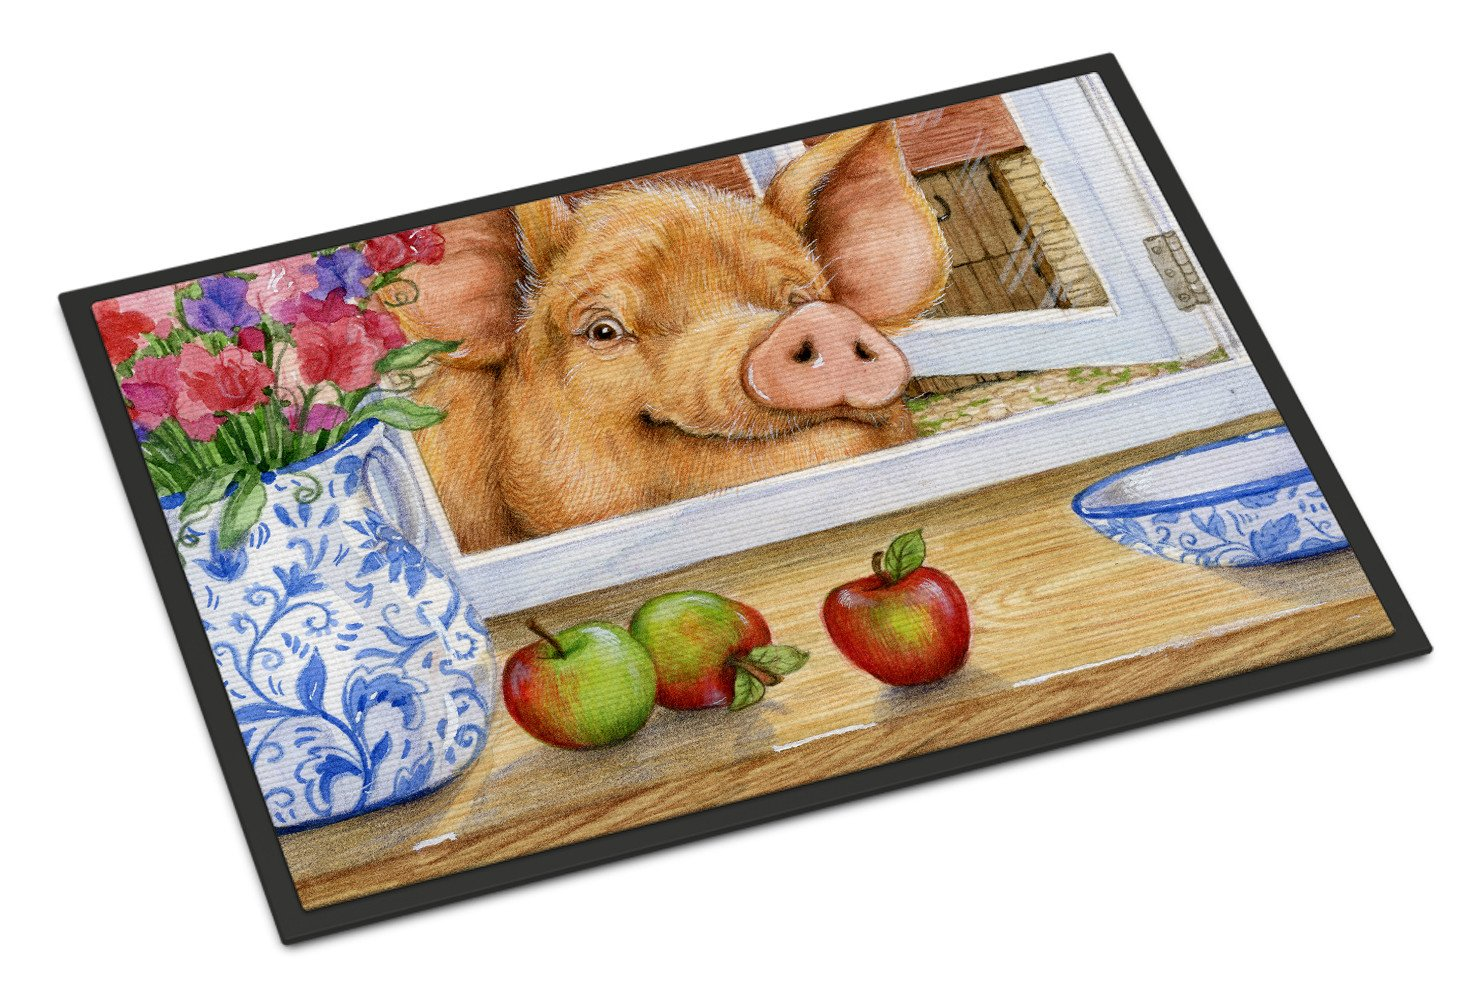 Pig trying to reach the Apple in the Window Indoor or Outdoor Mat 24x36 CDCO0352JMAT - the-store.com